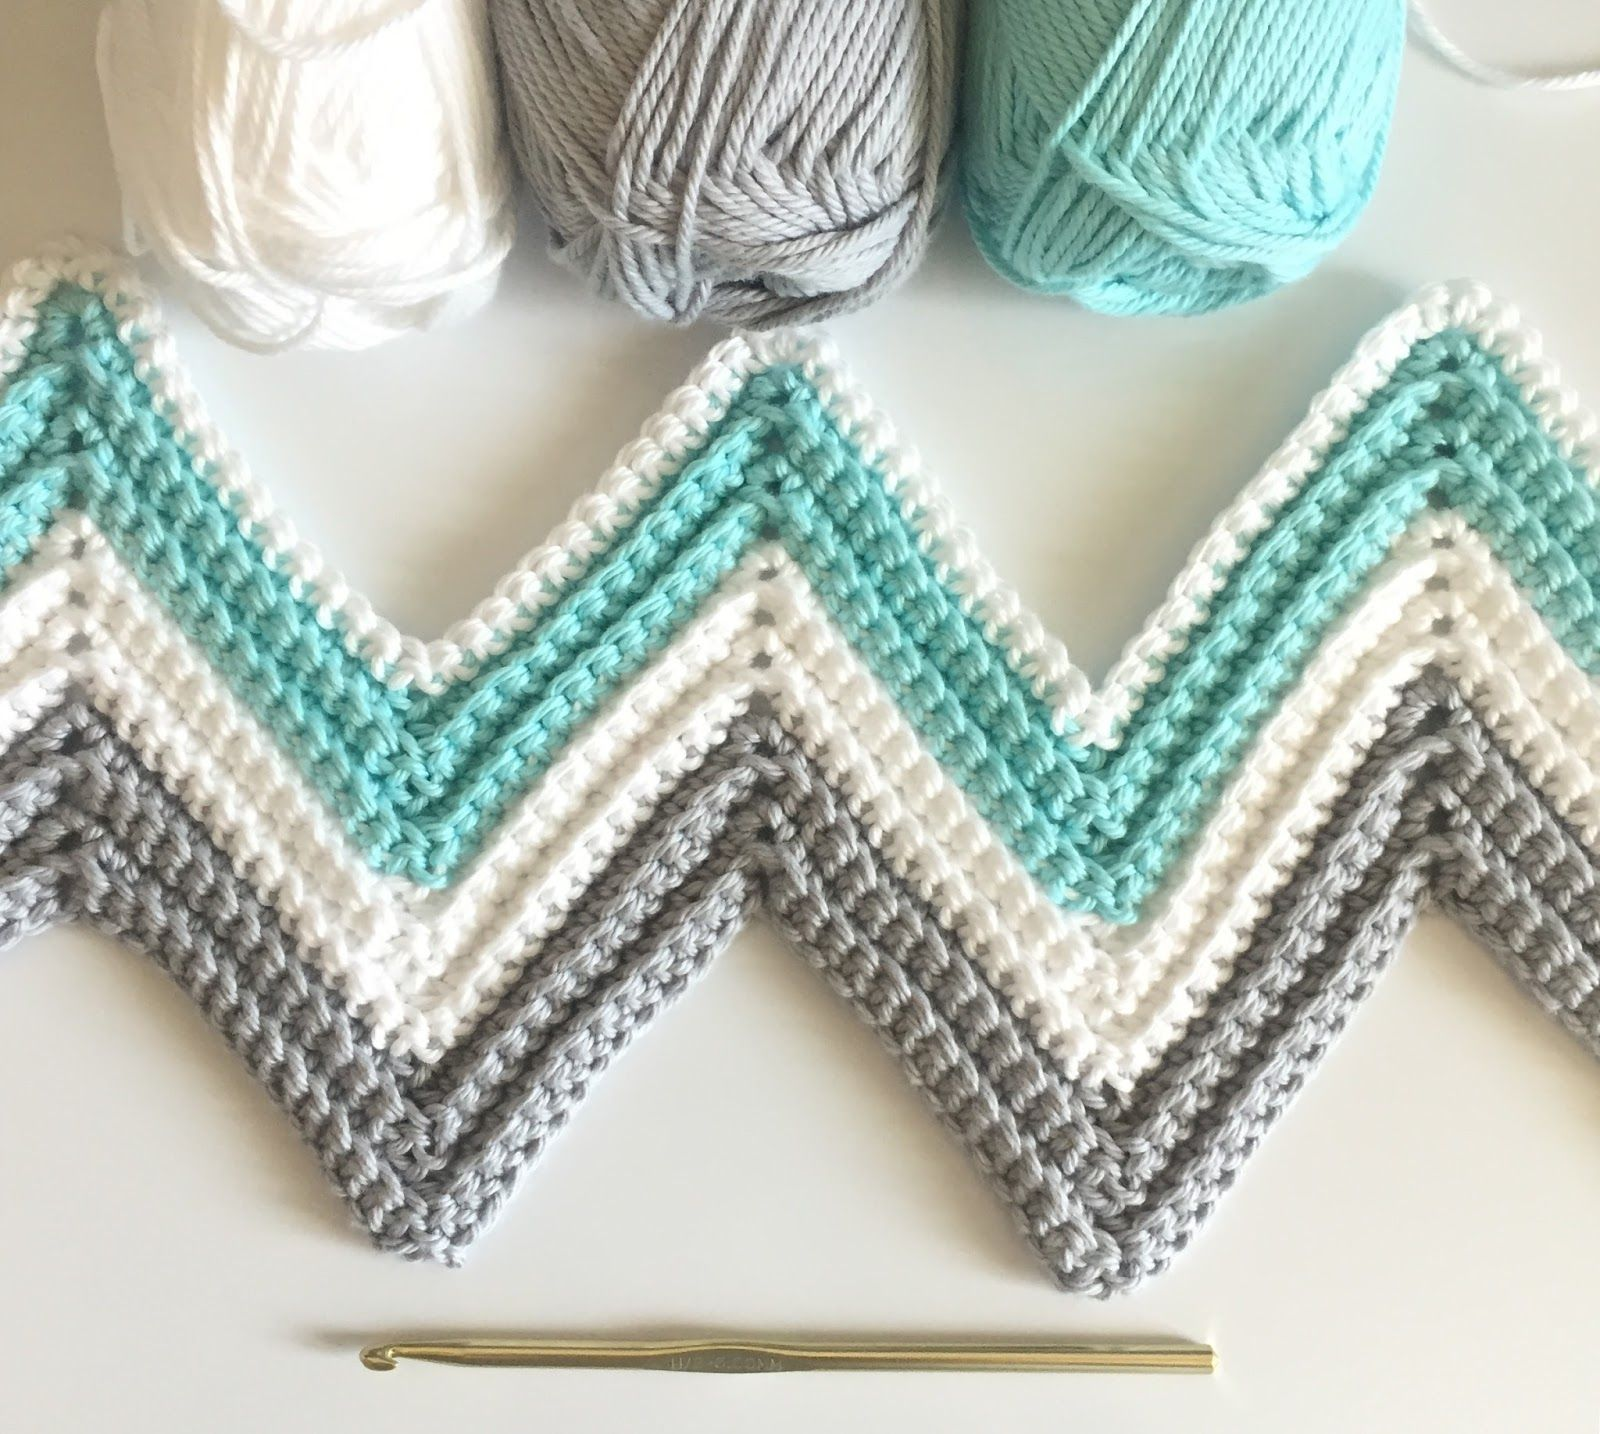 Single crochet in back loop only to get these ridges the colors crochet blankets bankloansurffo Choice Image